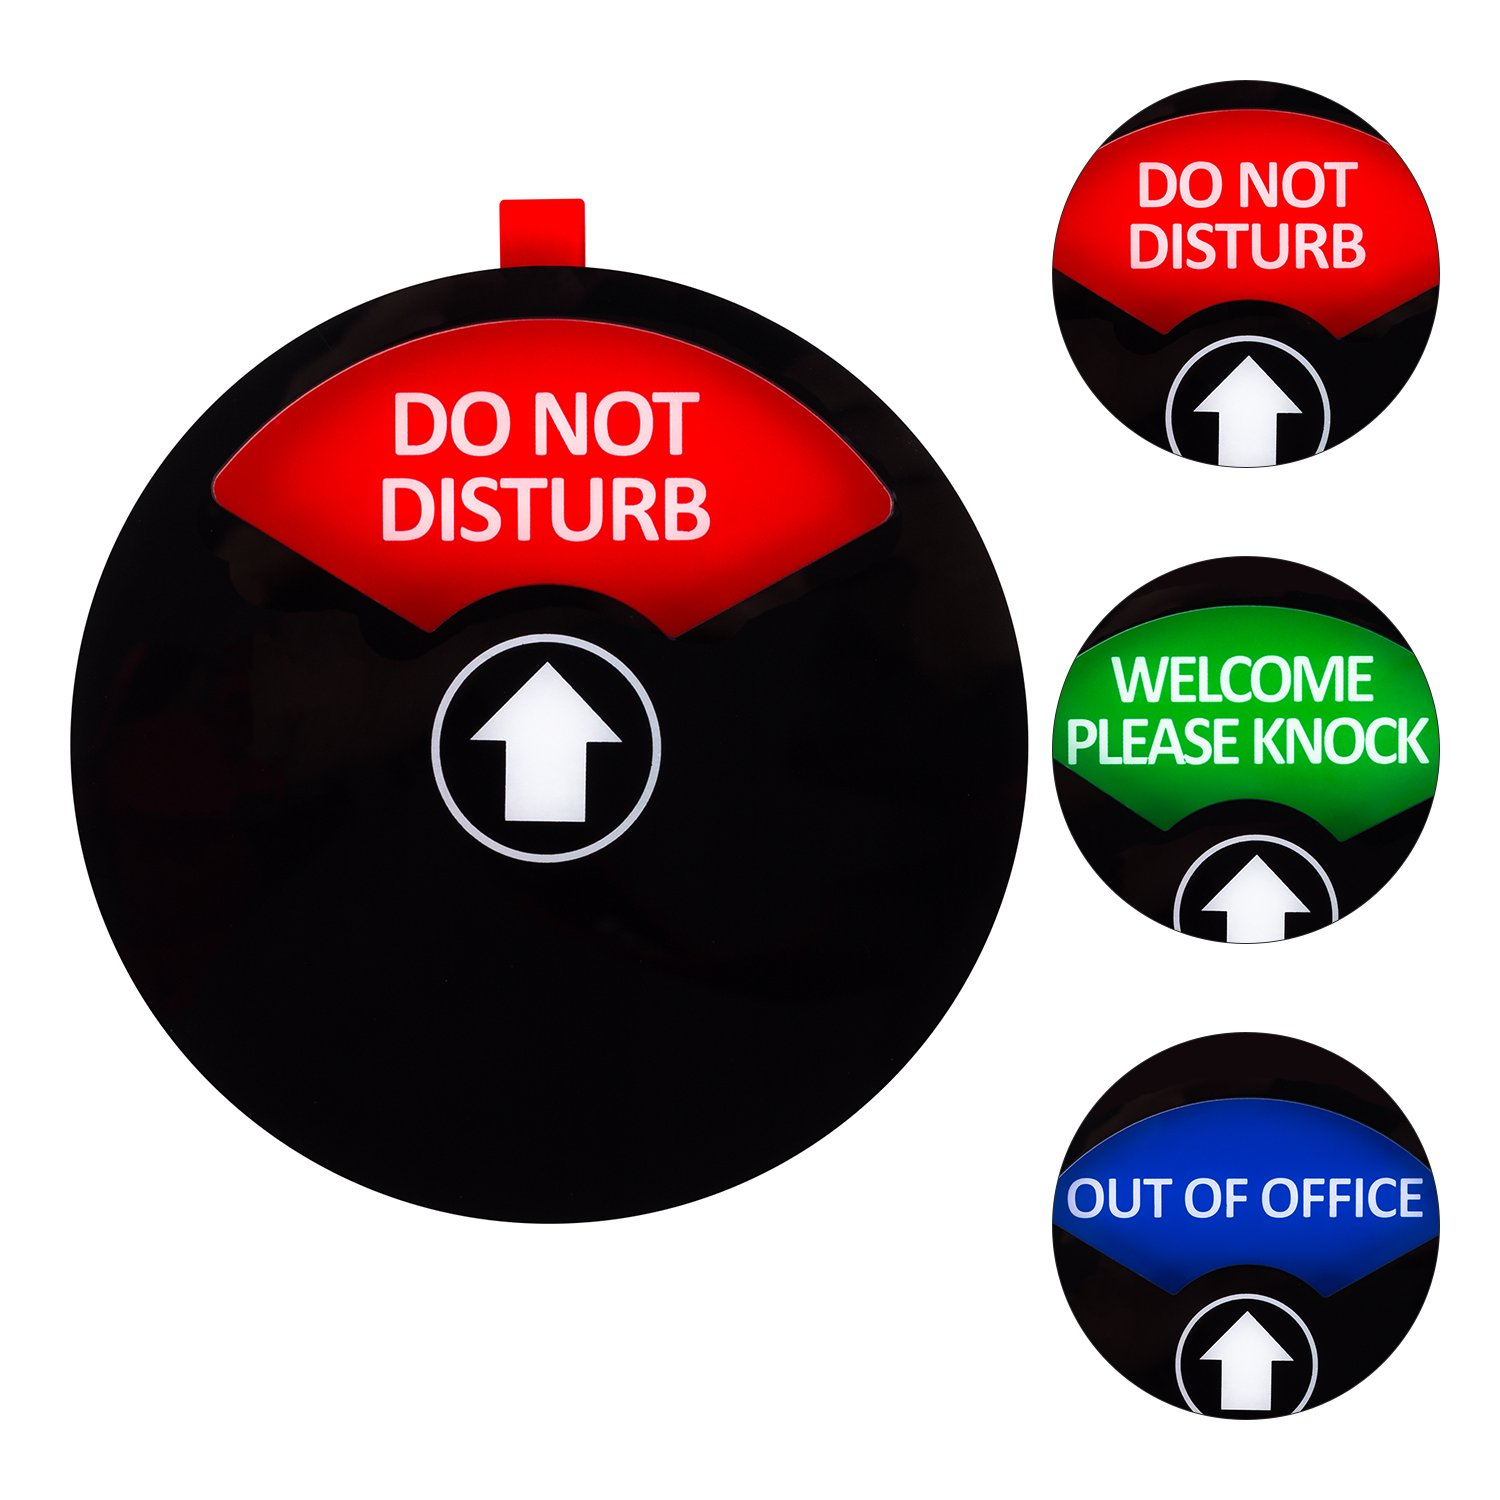 Kichwit Privacy Sign, Do Not Disturb Sign, Out of Office Sign, Welcome Please Knock Sign, Office Sign, Conference Sign for Offices, 5 Inch, Black by Kichwit (Image #1)